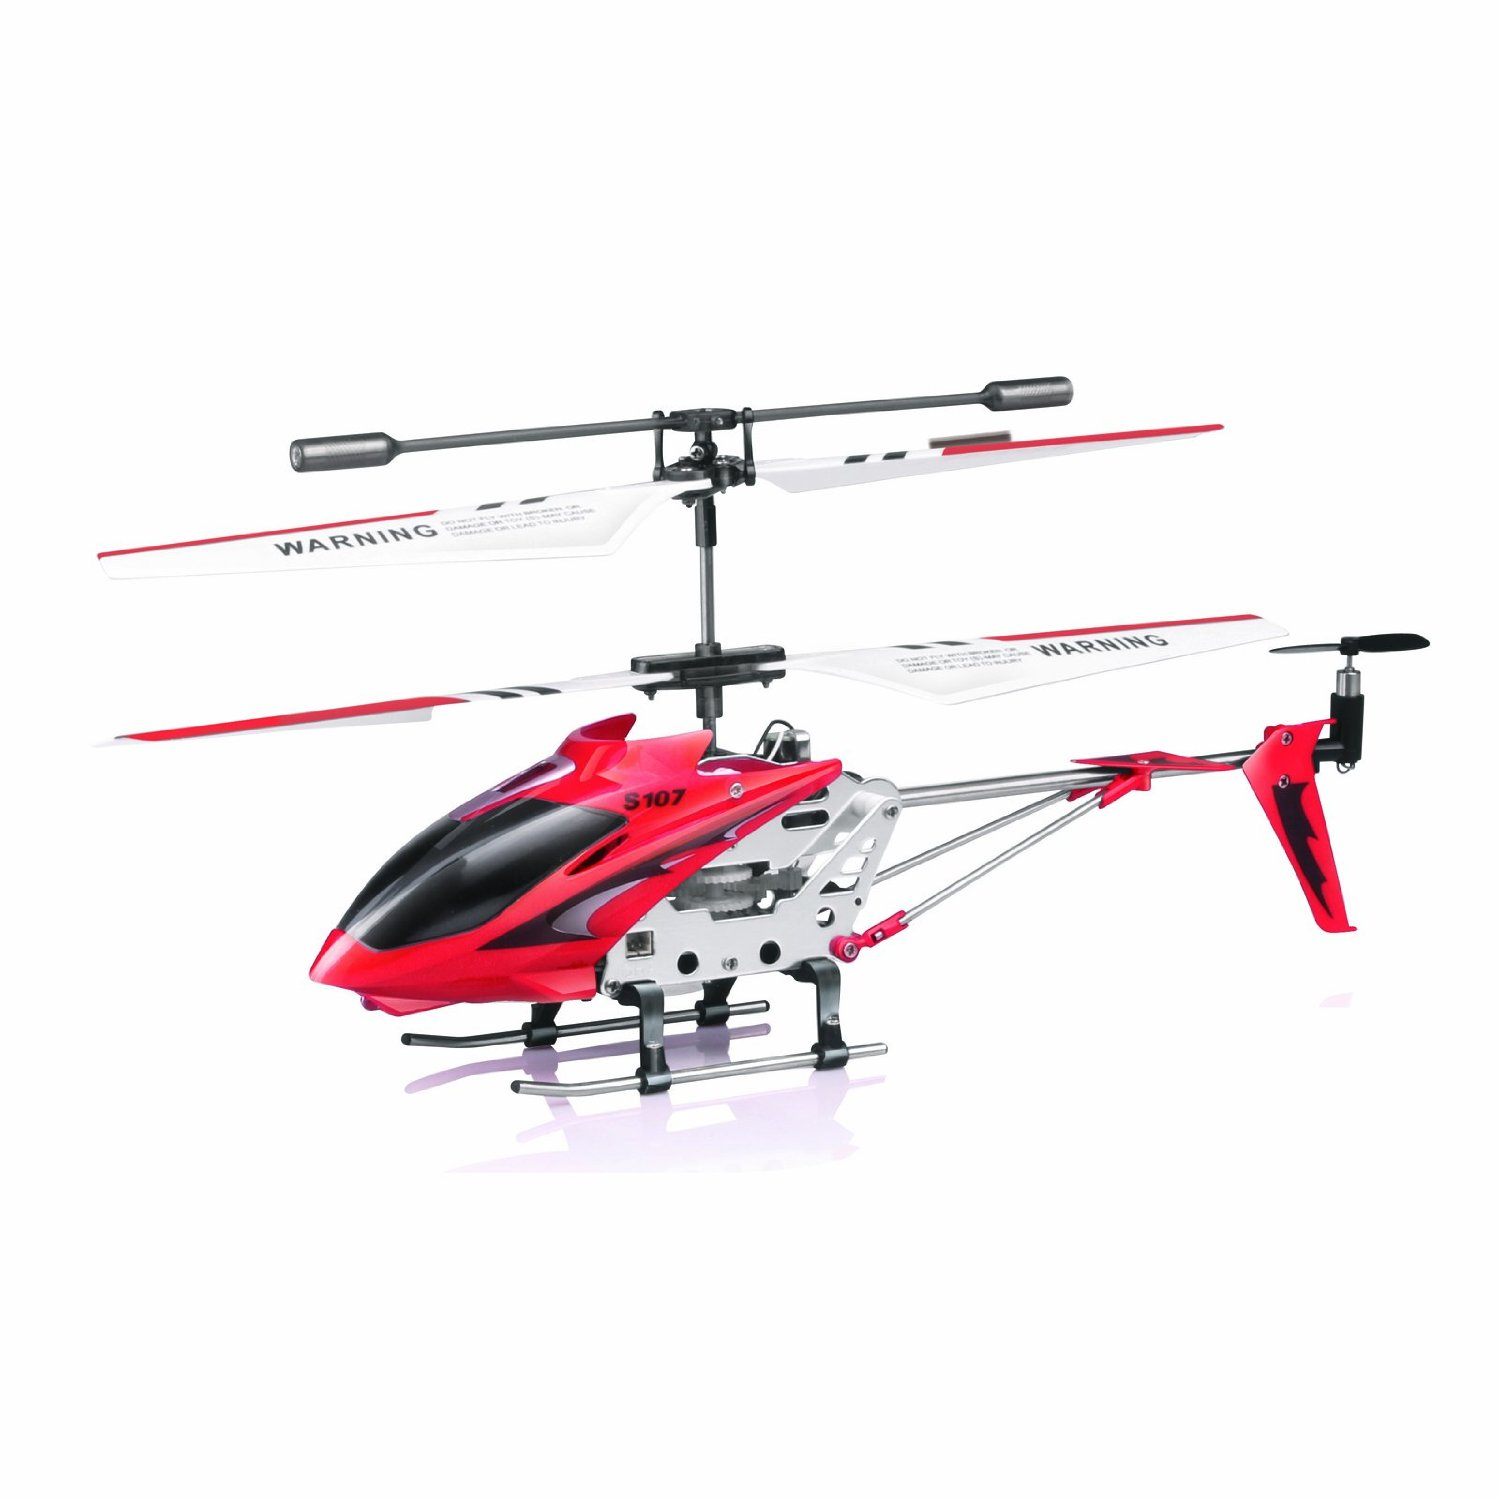 Syma S107 S107G R C Helicopter with Gyro- Red by Syma